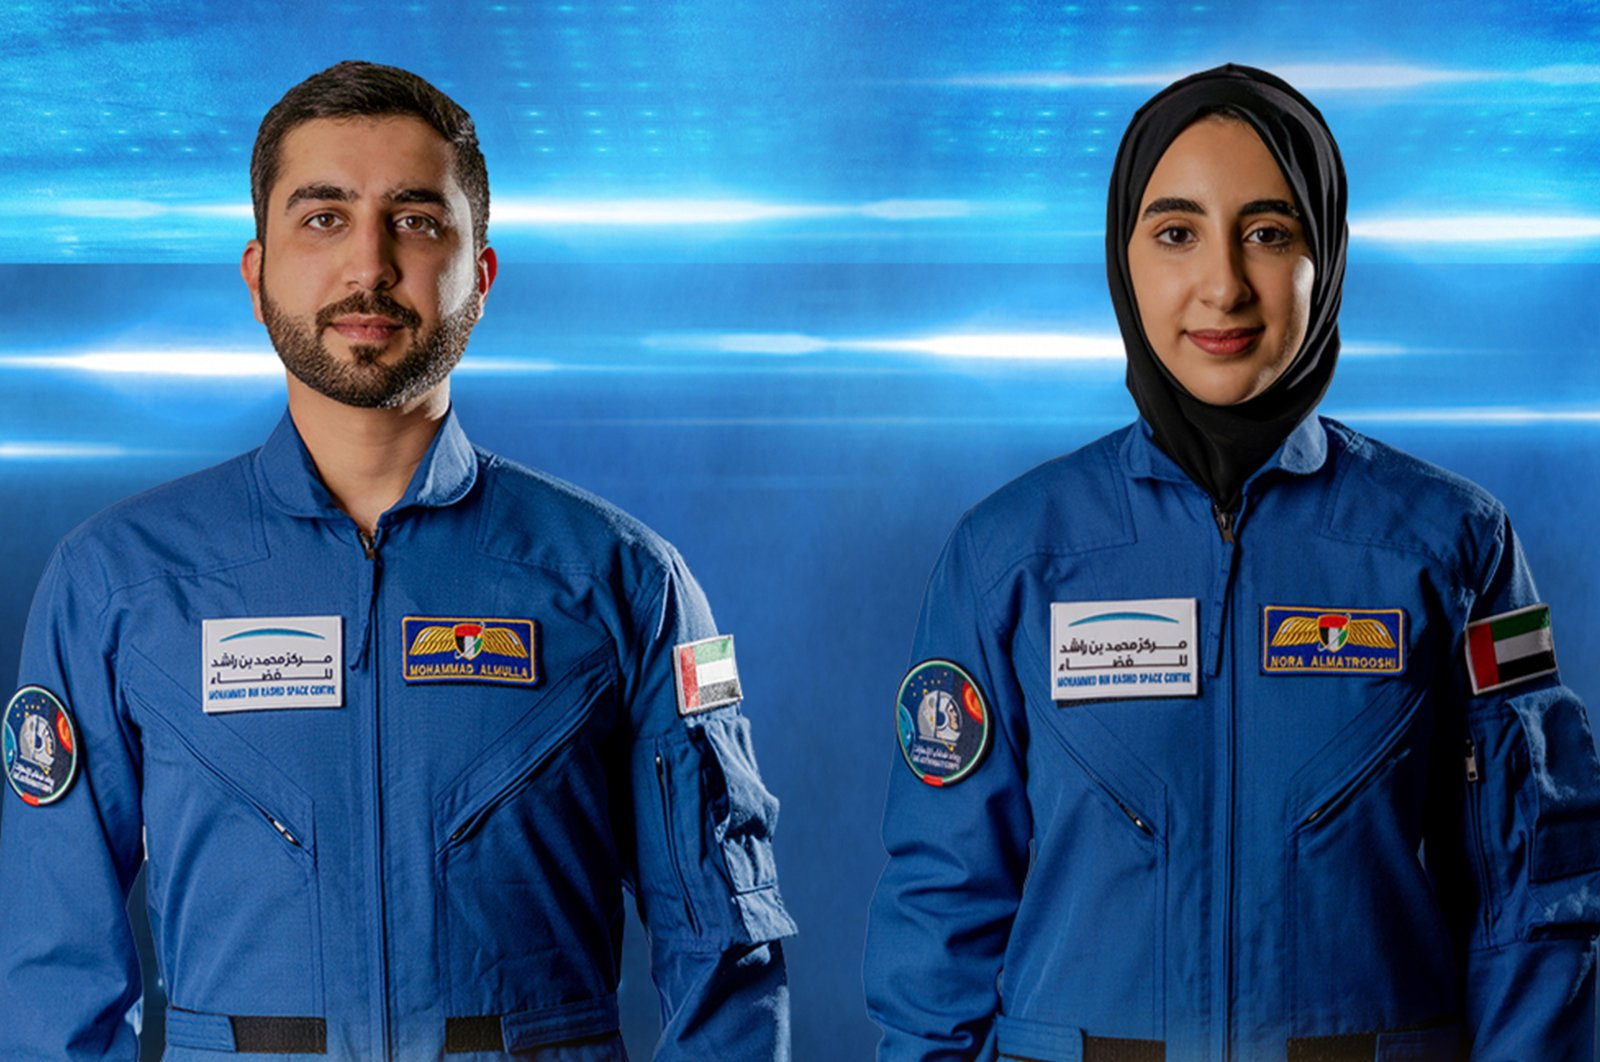 A handout photo made available by Emirates News Agency (WAM) shows Mohammed al-Mulla (L) and Noura al-Matroushi, the newly announced UAE astronauts for the country's space program, United Arab Emirates, April 10, 2021. (Emirates News Agency Photo via epa)